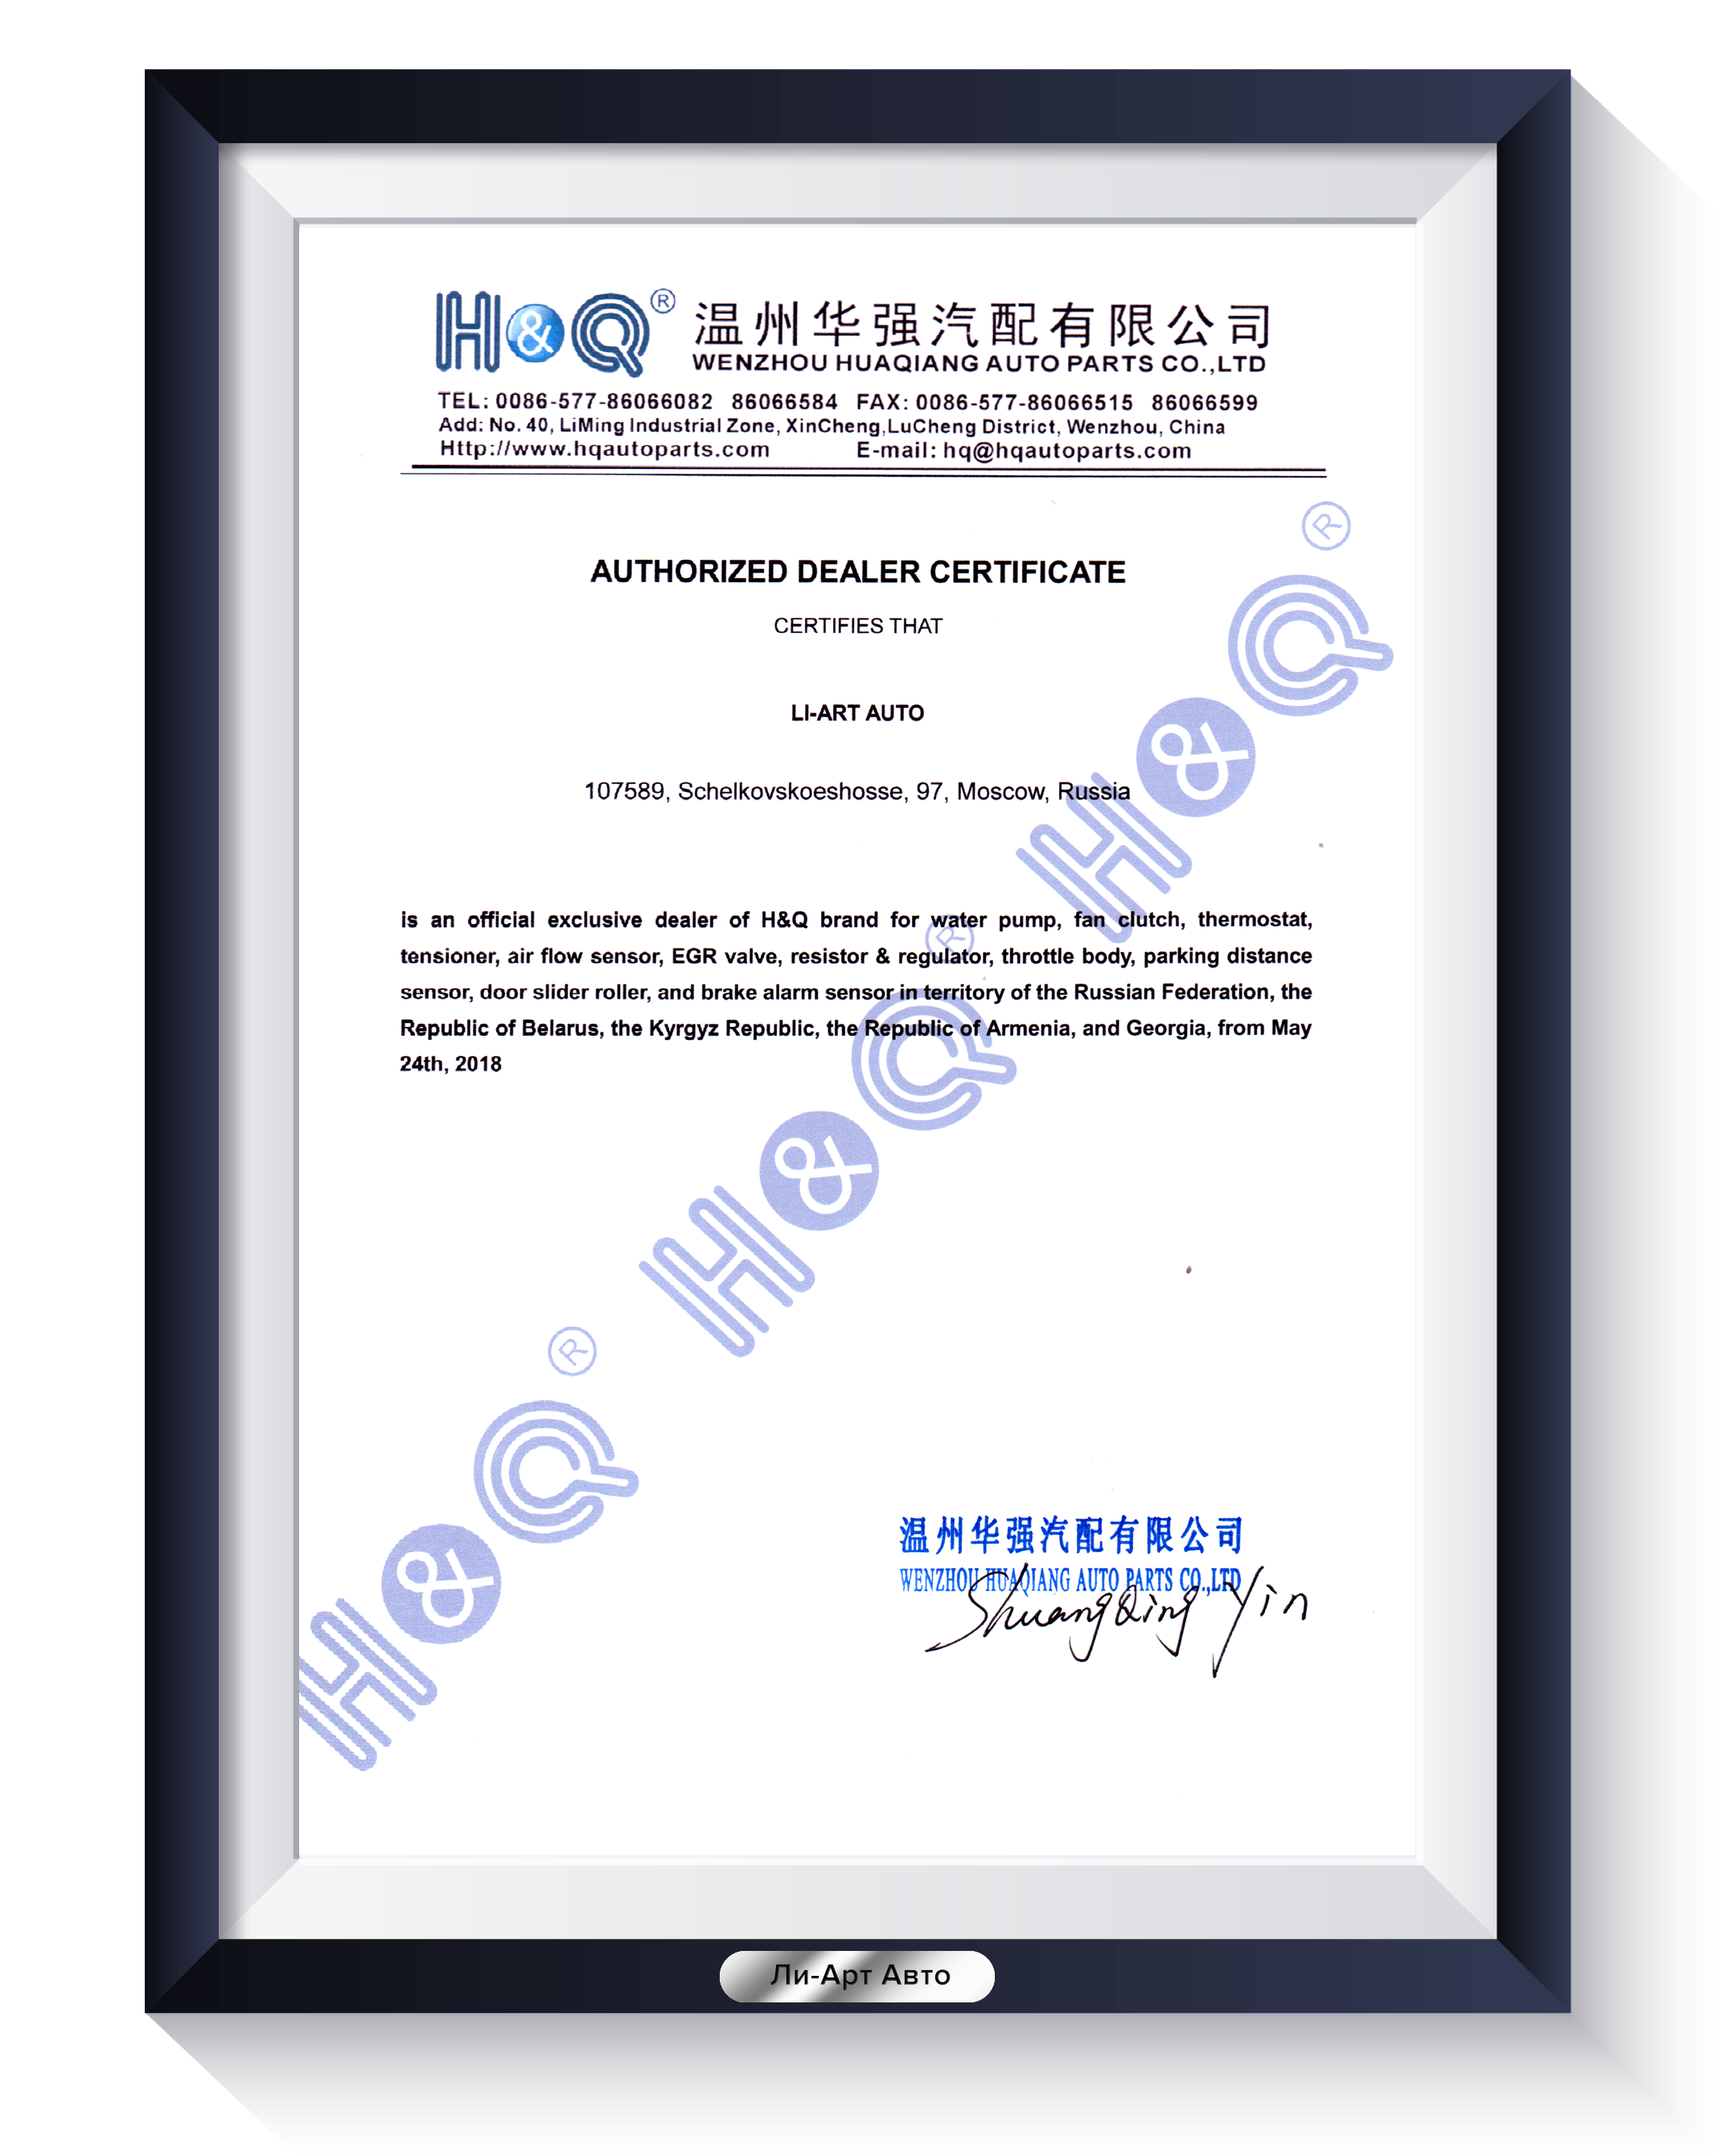 HQ authorized dealer certificate